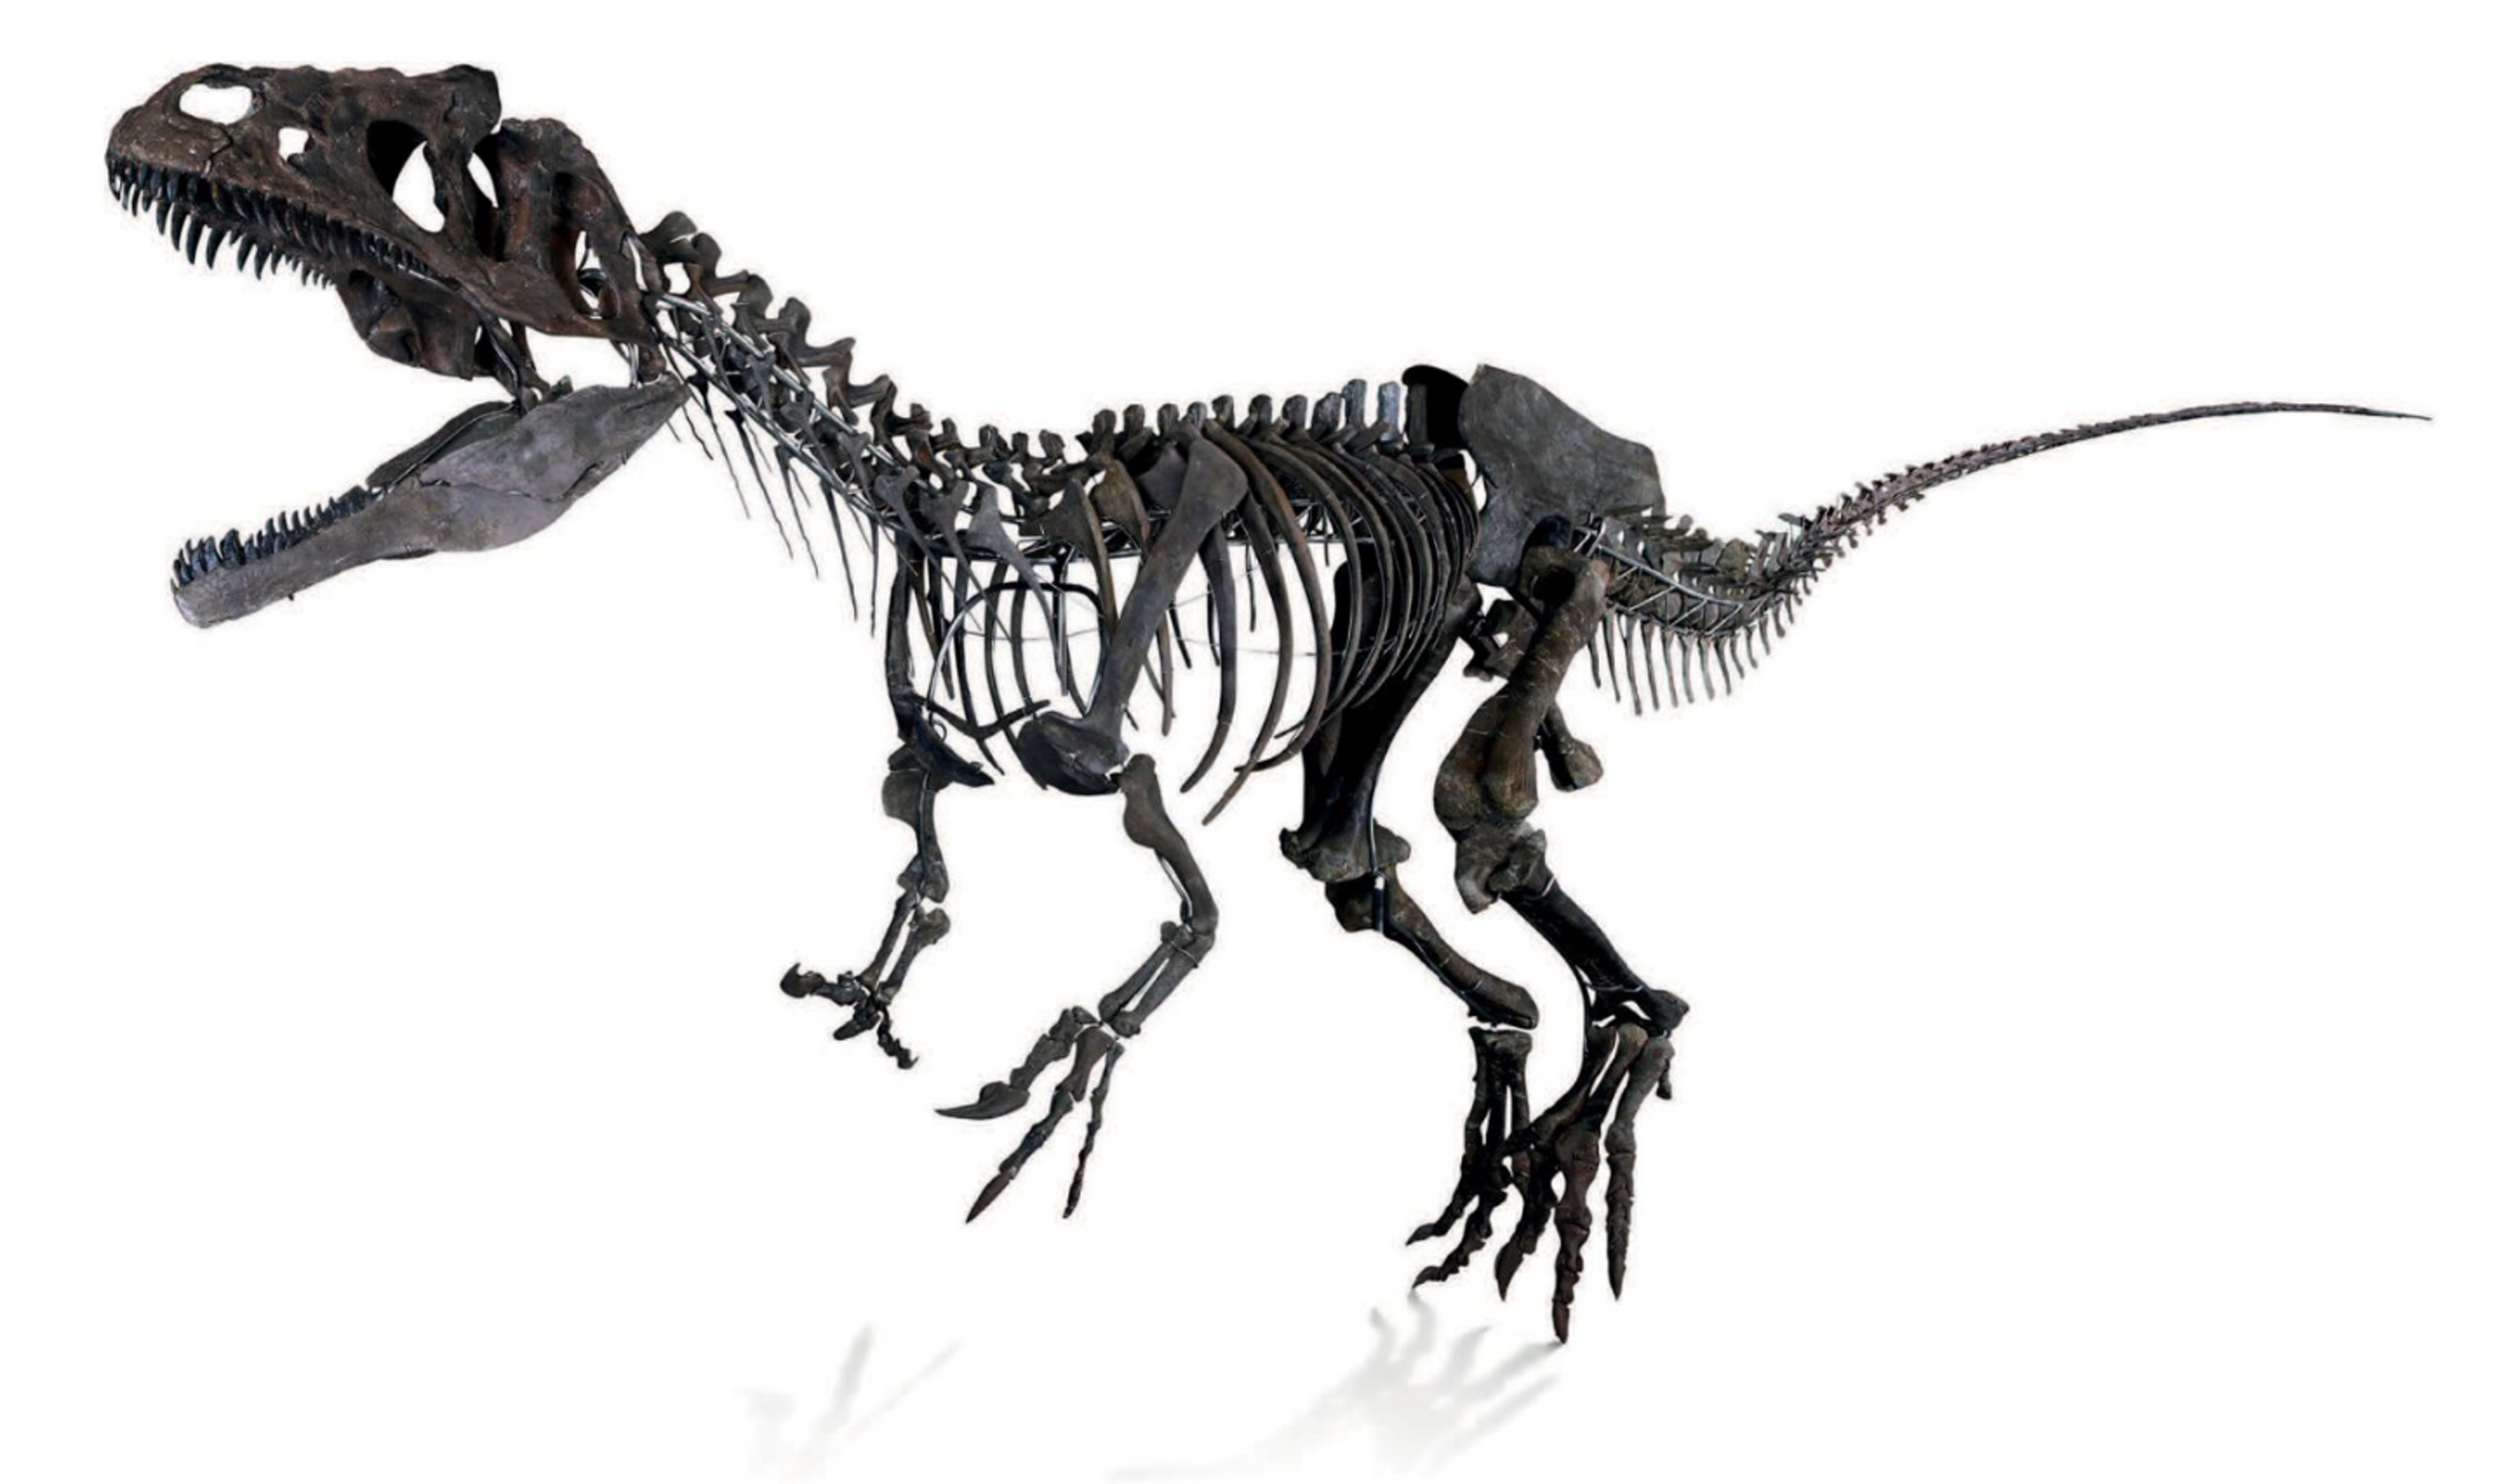 Auction of Mystery $2.3 Million Dinosaur Fossil Pisses Off Paleontologists